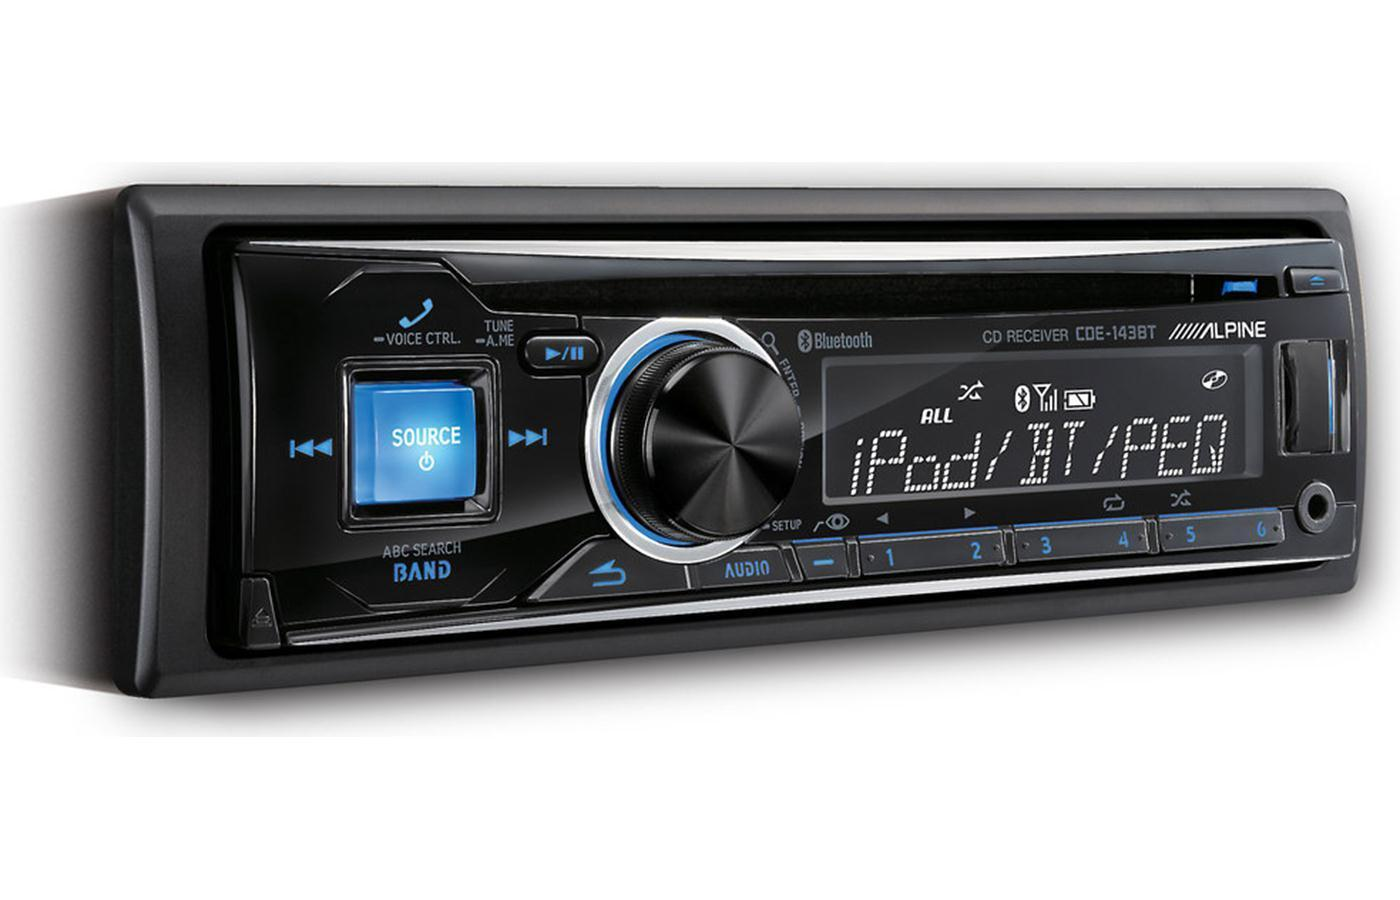 ALPINE CDE-143BT Car Stereo CD/USB Receiver w/ Advanced Bluetooth